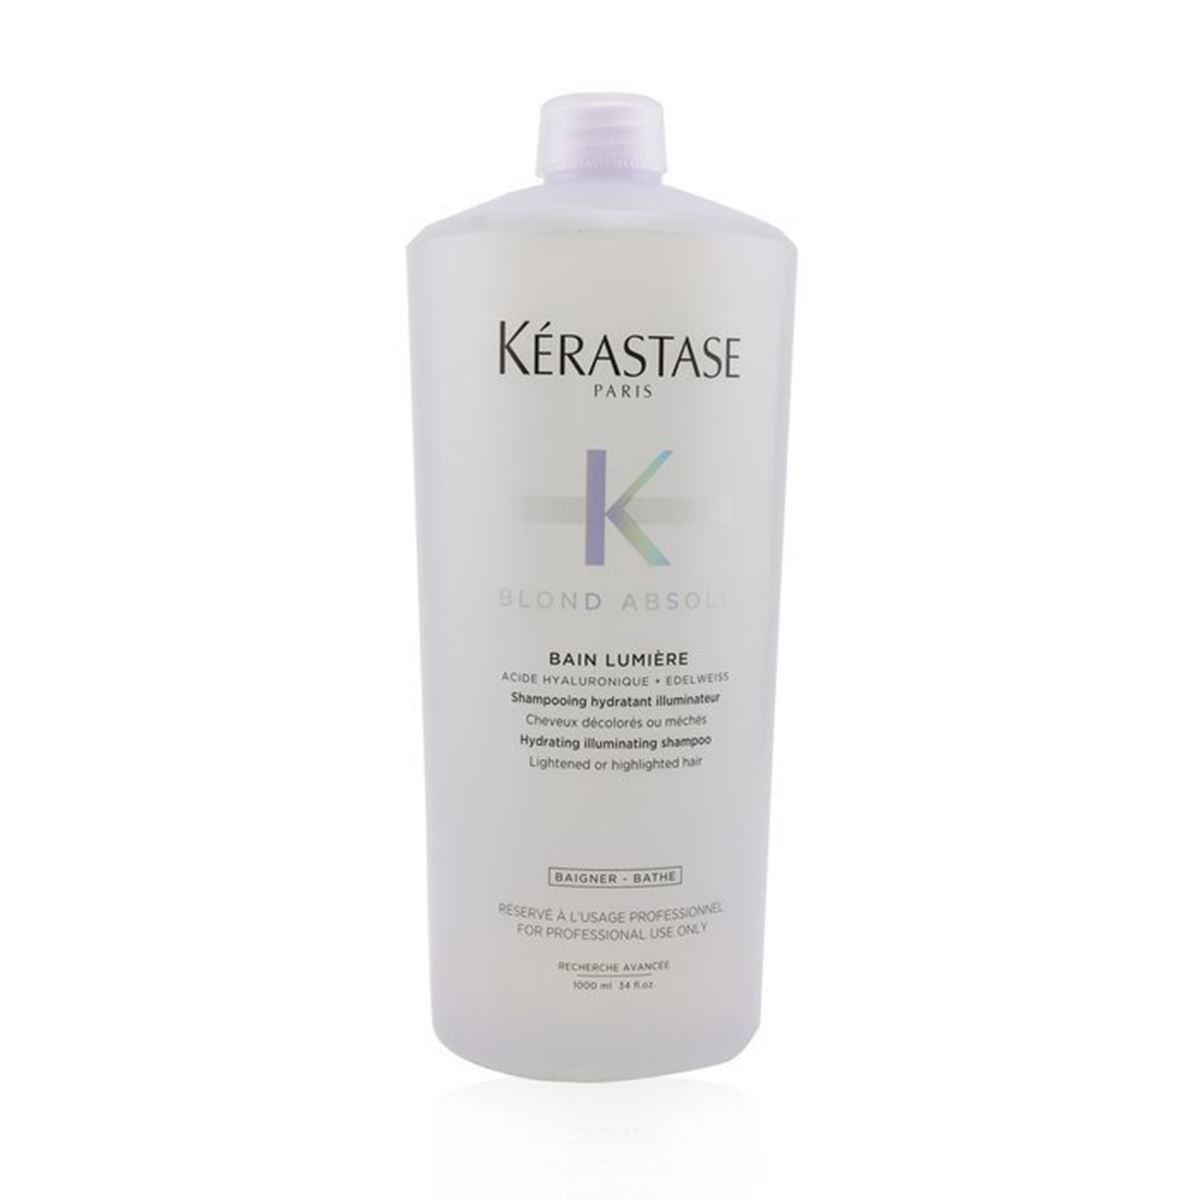 KERASTASE BLOND ABSOLU BAIN LUMIERE ŞAMPUAN 1000ML